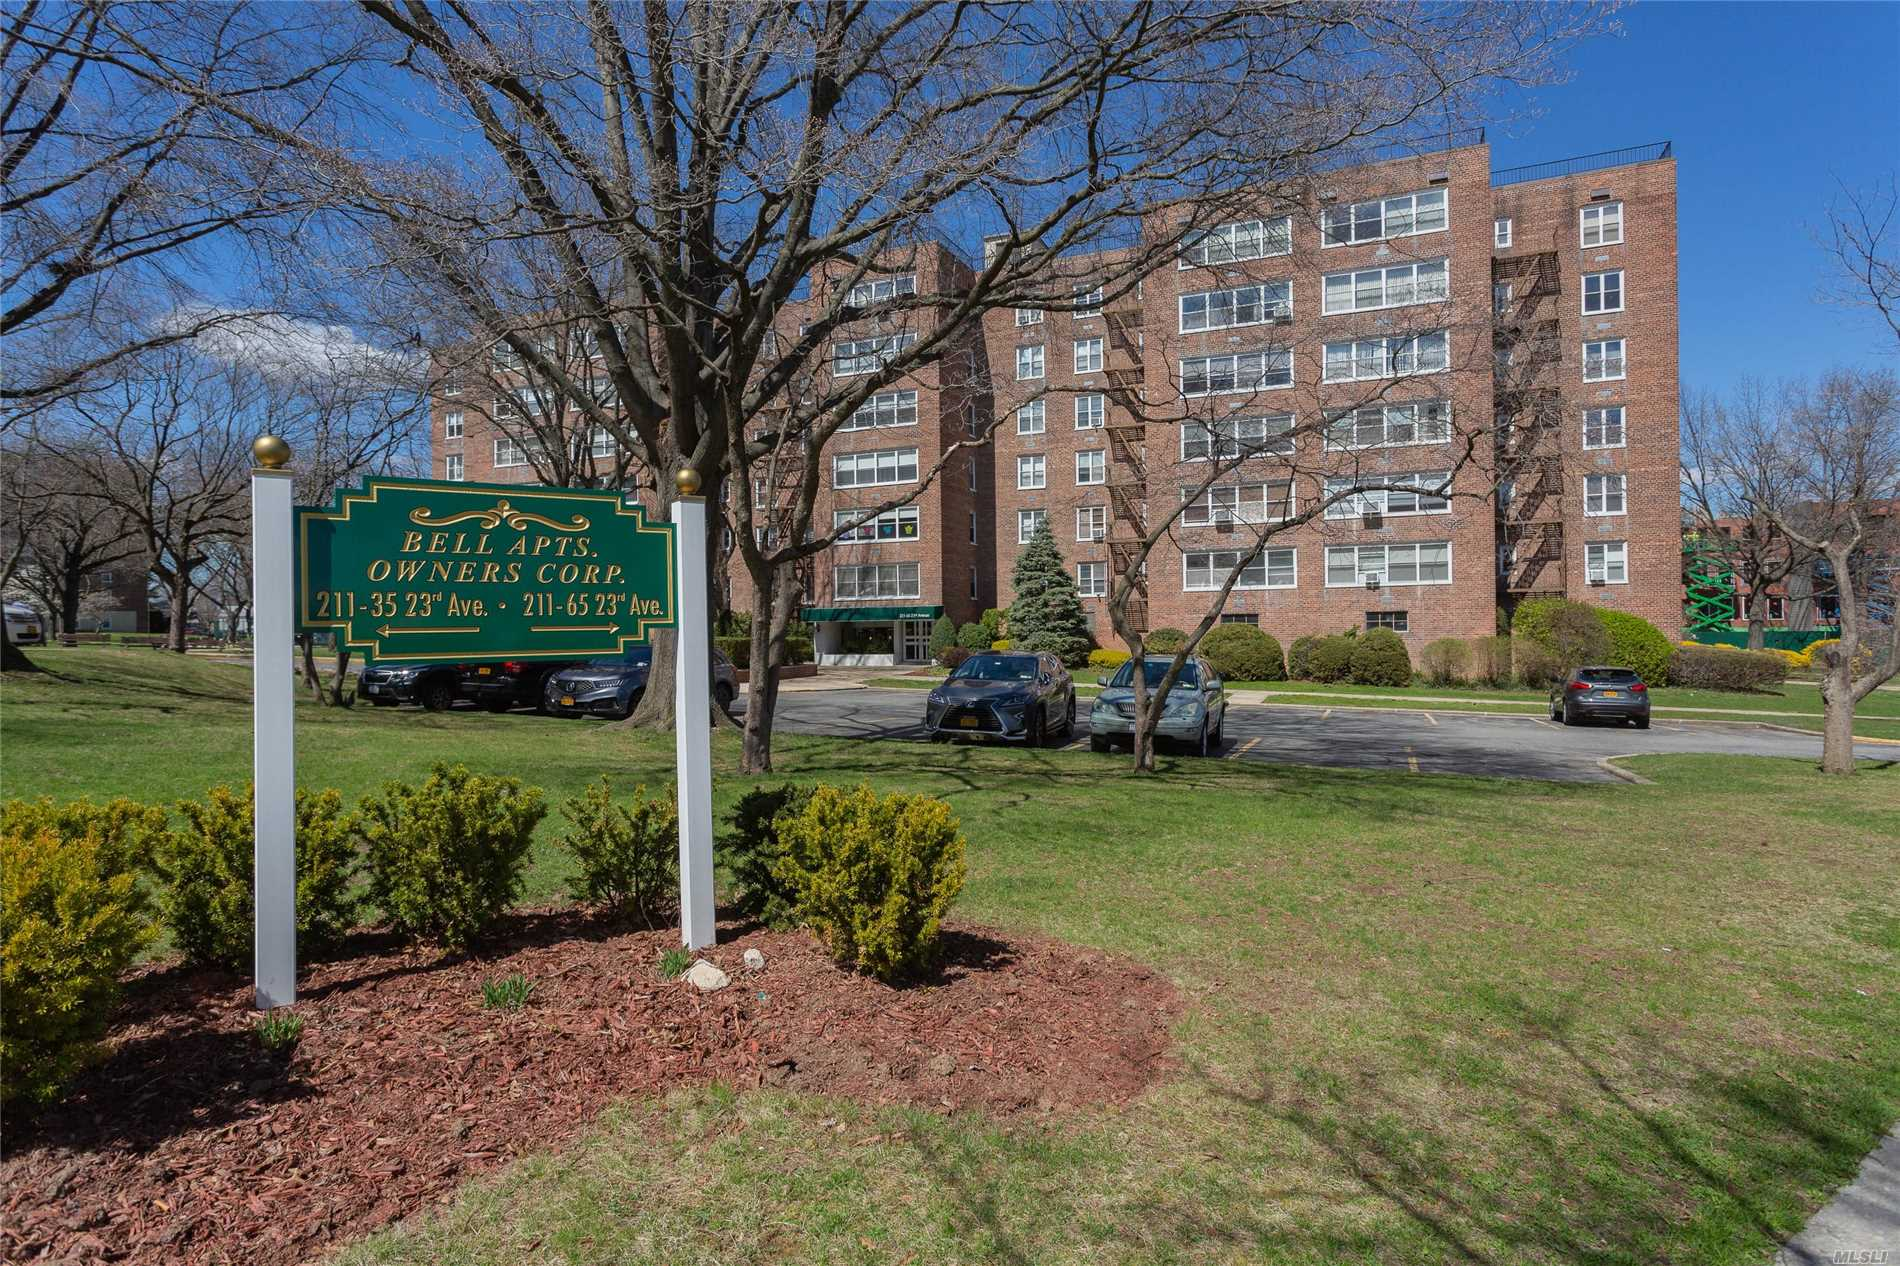 Move right into this Renovated Oversized 2 bedroom located in the heart of Bay Terrace. Great layout, lots of closets, central air/heat. Unit comes with RESERVED PARKING. Convenience galore! Steps to Bay Terrace Shopping center, minutes to LIRR, Express bus to city/flushing a brief stroll away.Hurry~ this wont last!!